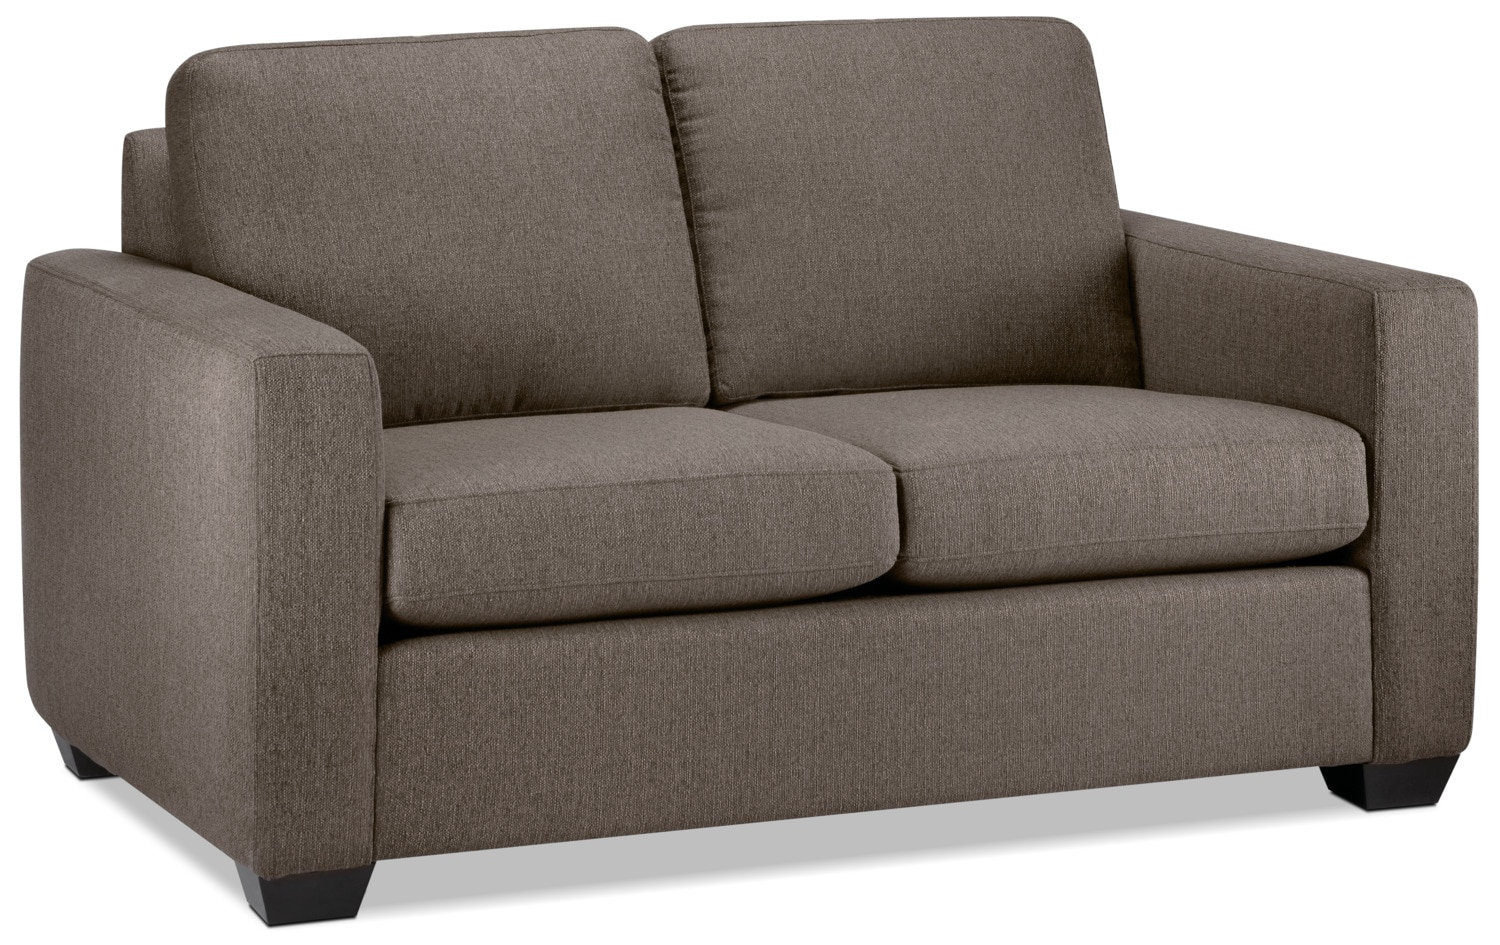 Hilary Loveseat - Taupe